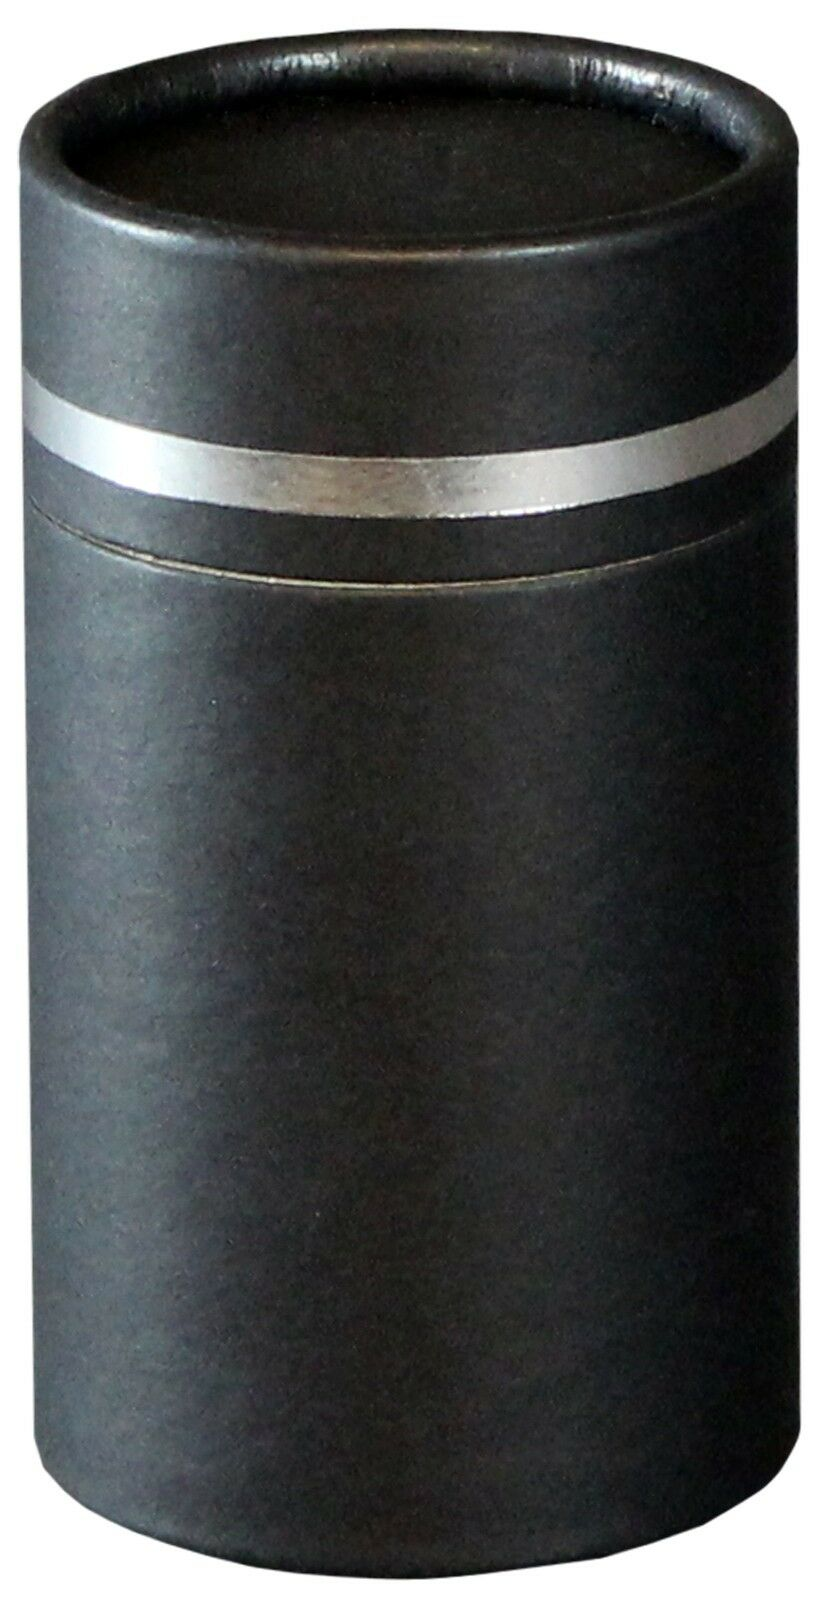 Biodegradable Ash Scattering Tube Cremation Urn - 20 cubic inches